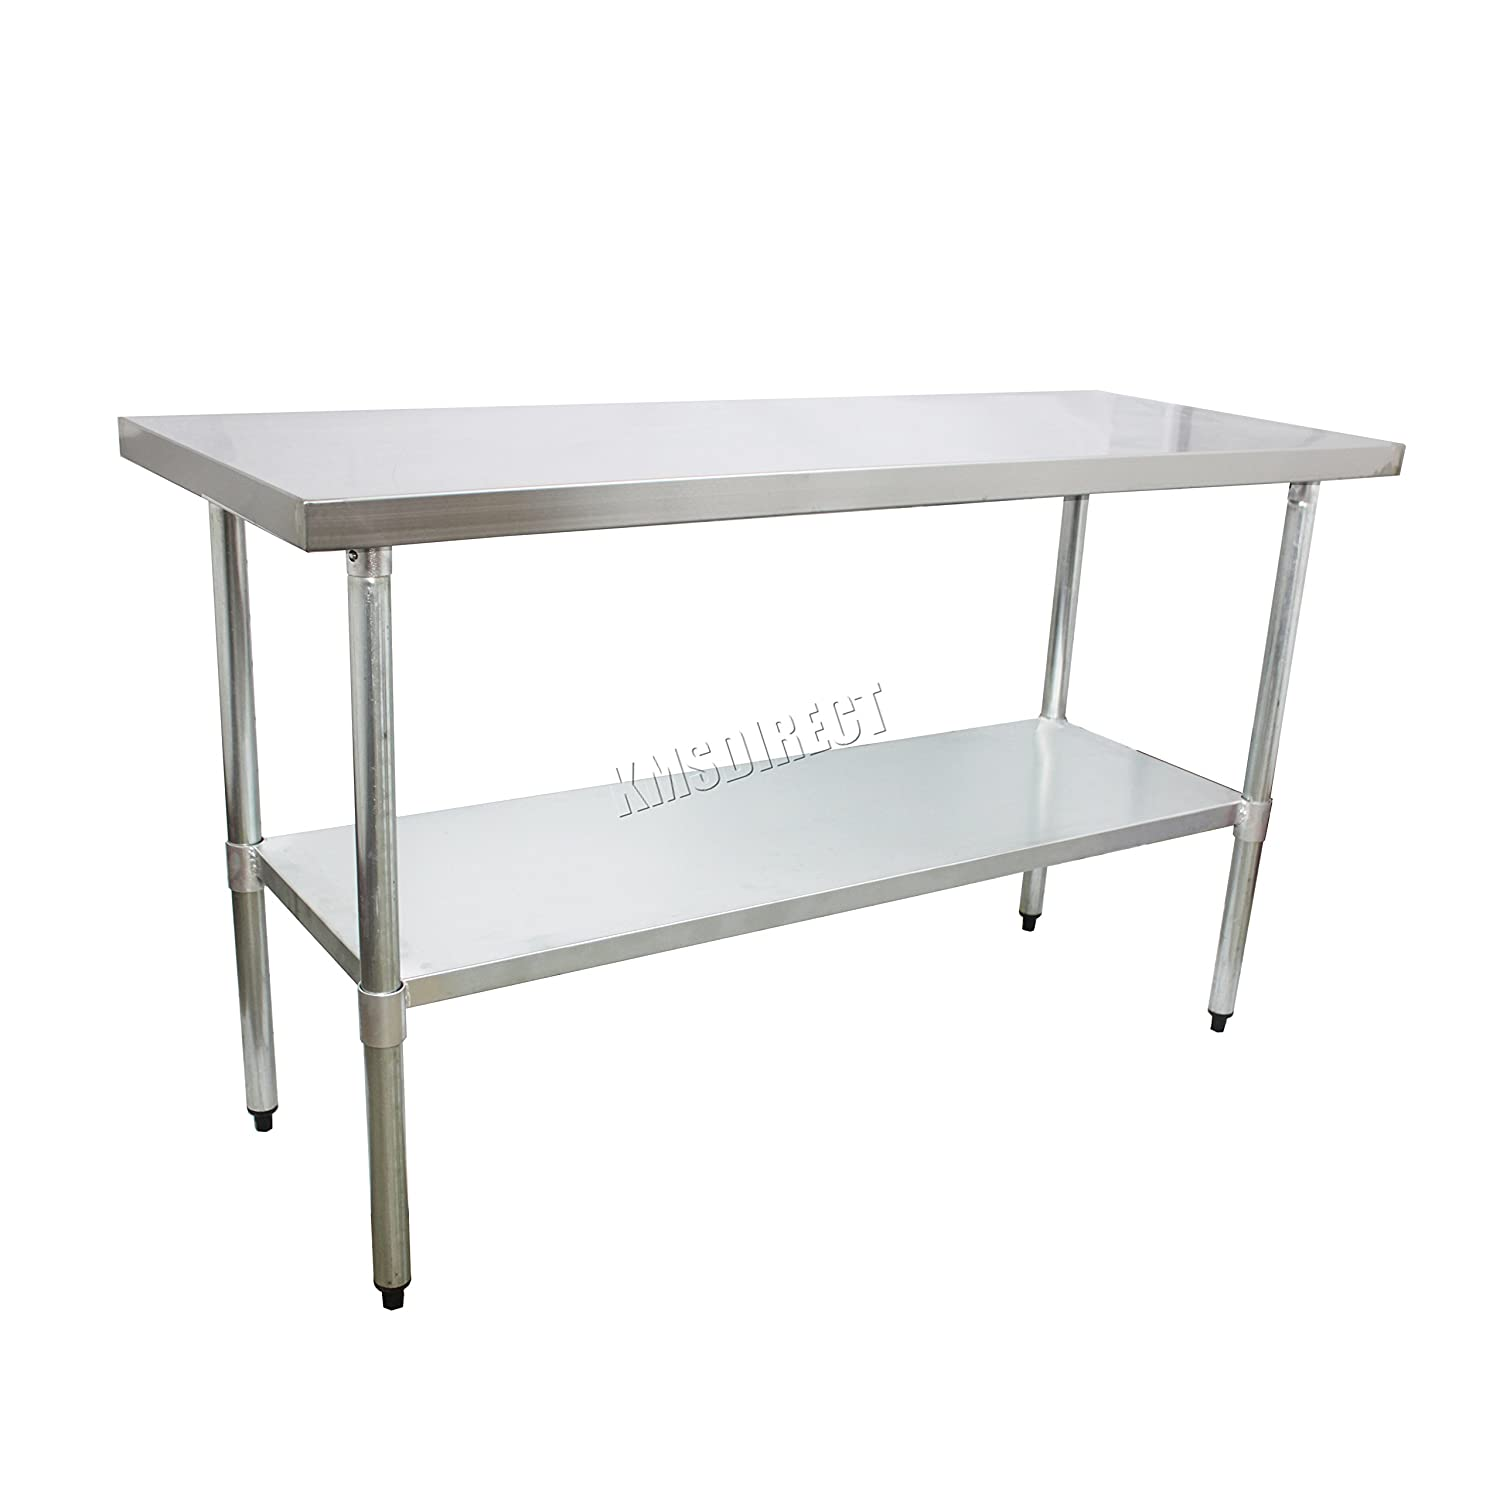 FoxHunter Stainless Steel Commercial Catering Table Work Bench Food Prep  Kitchen Top 2FT X 4FT New